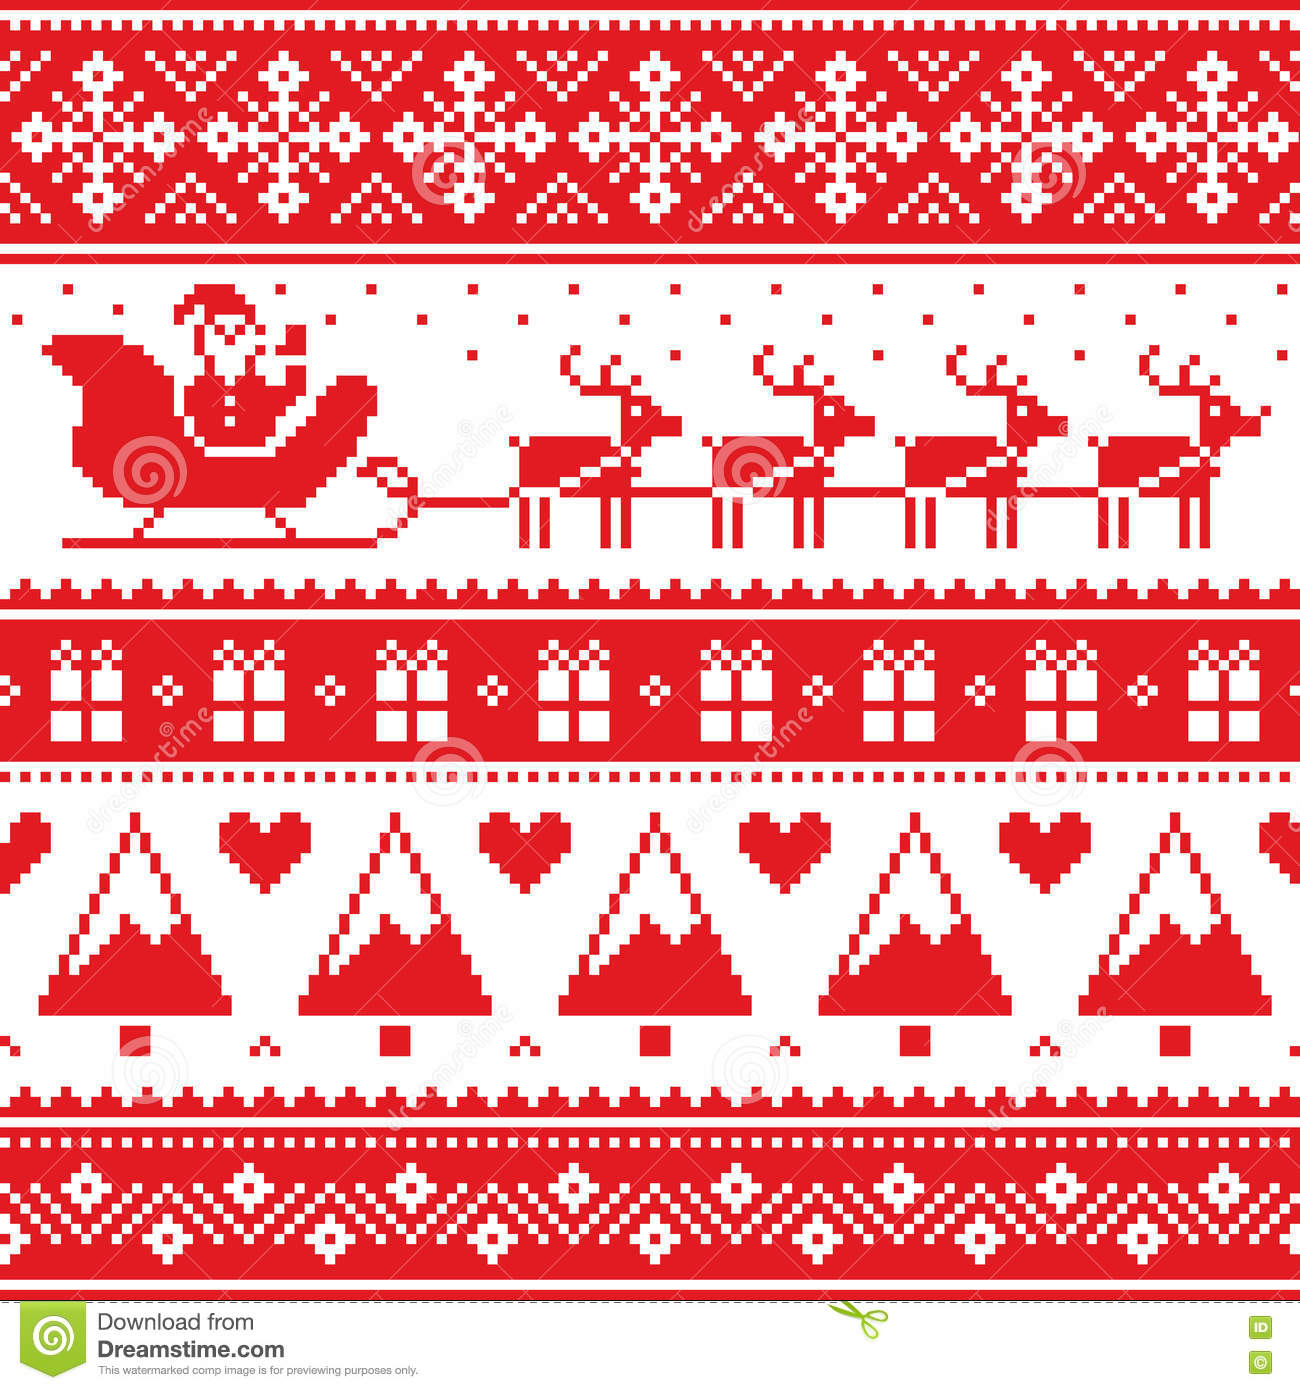 Christmas Jumper Or Sweater Seamless Red Pattern With Santa And Reindeer Stoc...